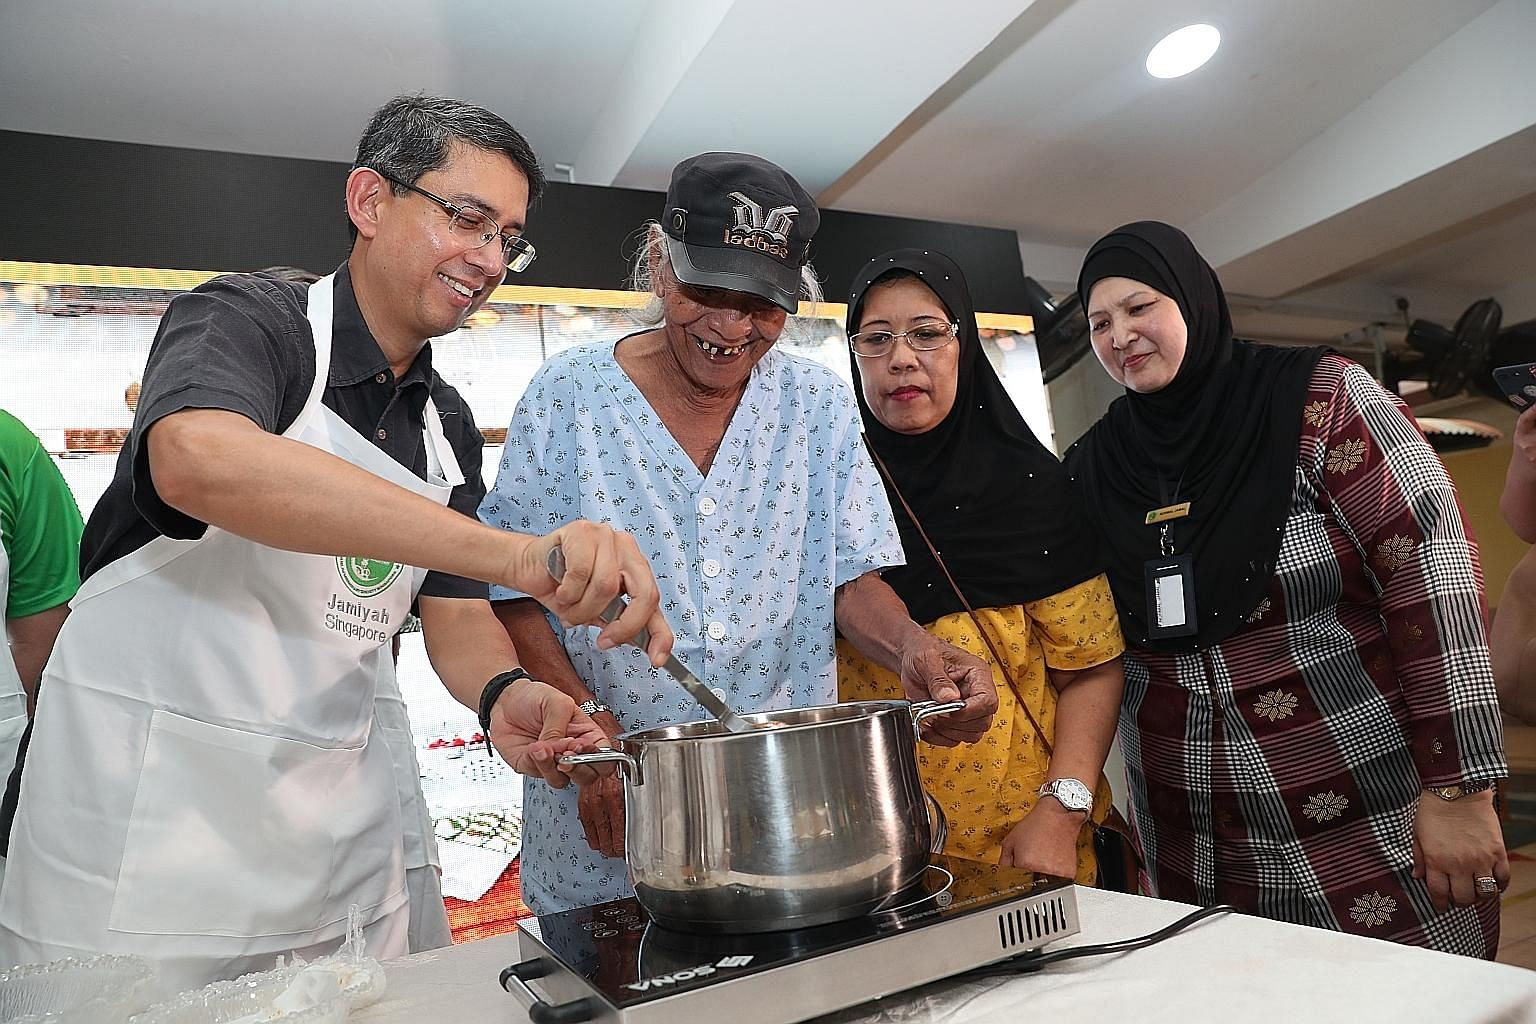 Guest of honour Muhammad Faishal Ibrahim trying his hand at making Bombay curry chicken, one of the recipes from the book, with the help of Jamiyah residents Jambaree Ahmad and Suriah Wakee Yon, and staff member Normal Jamal.